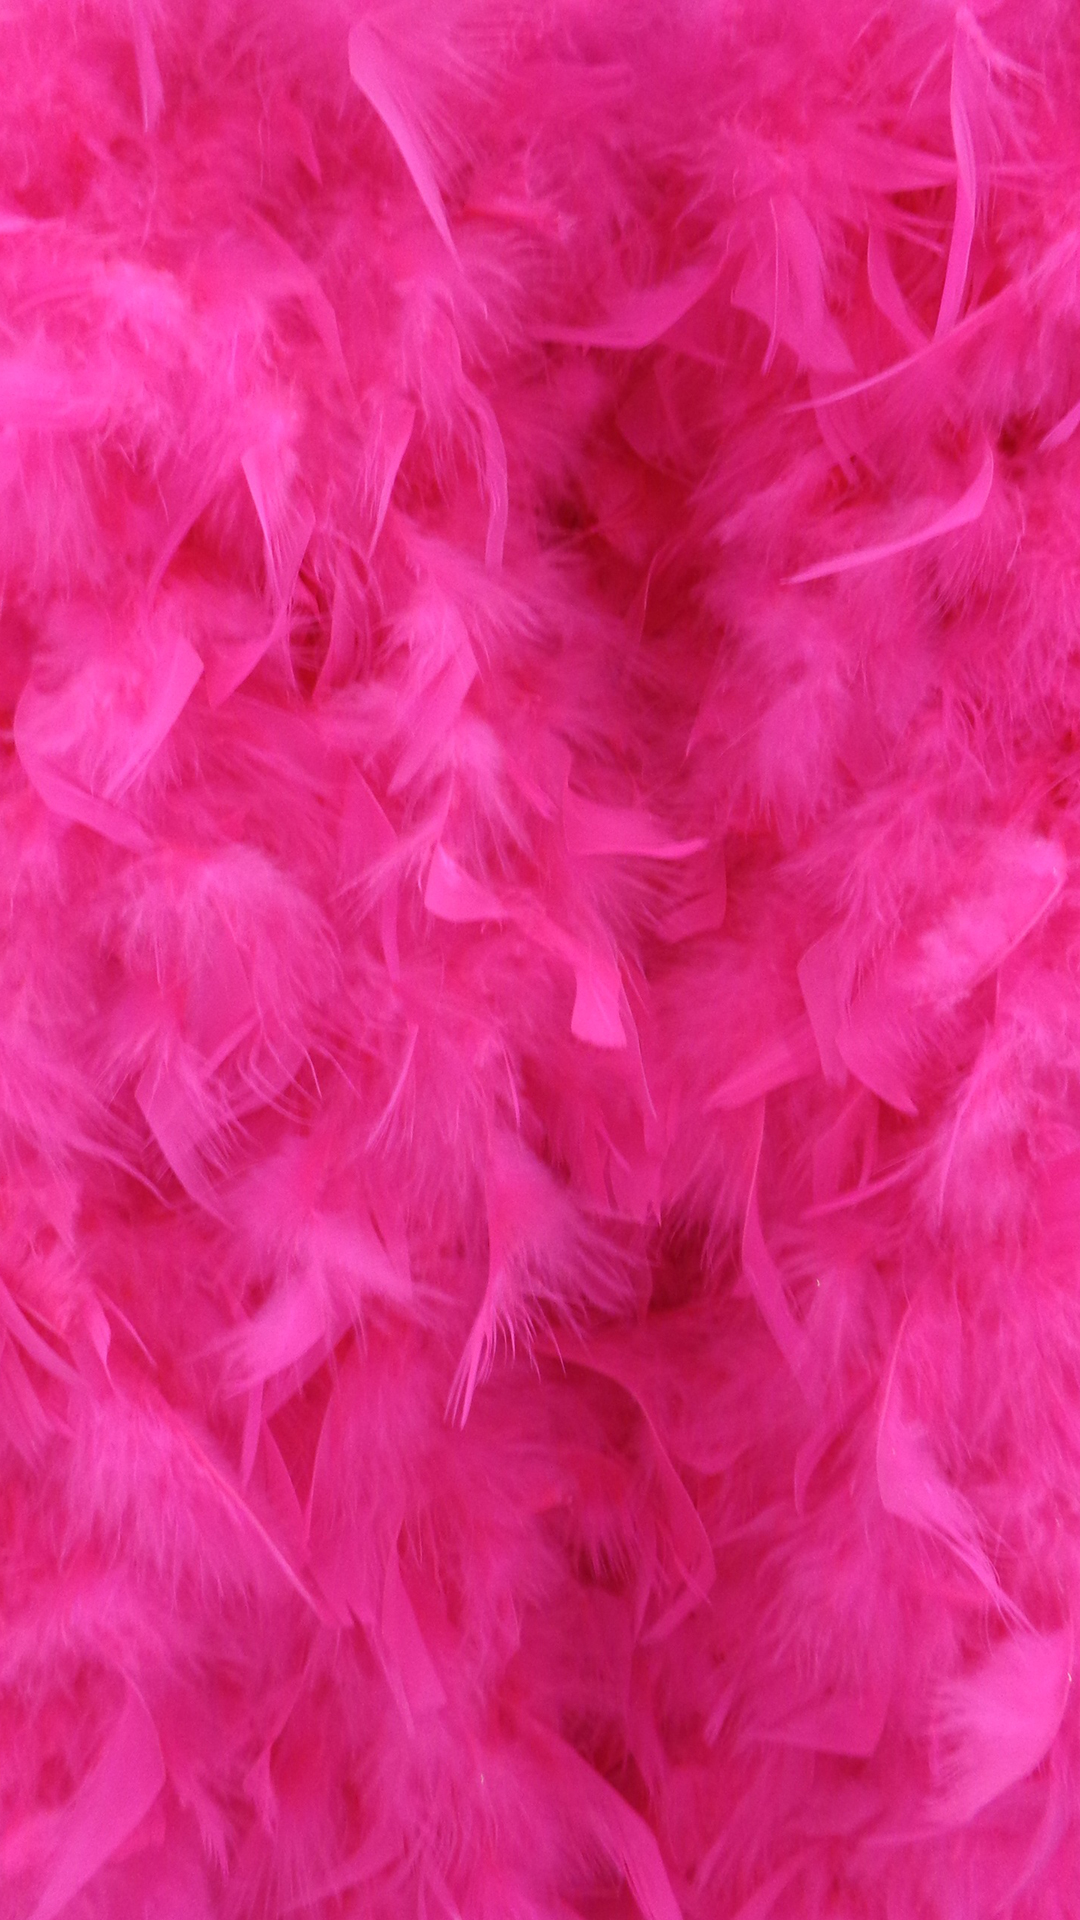 Pink Feathers Hd Wallpaper For Your Android Phone